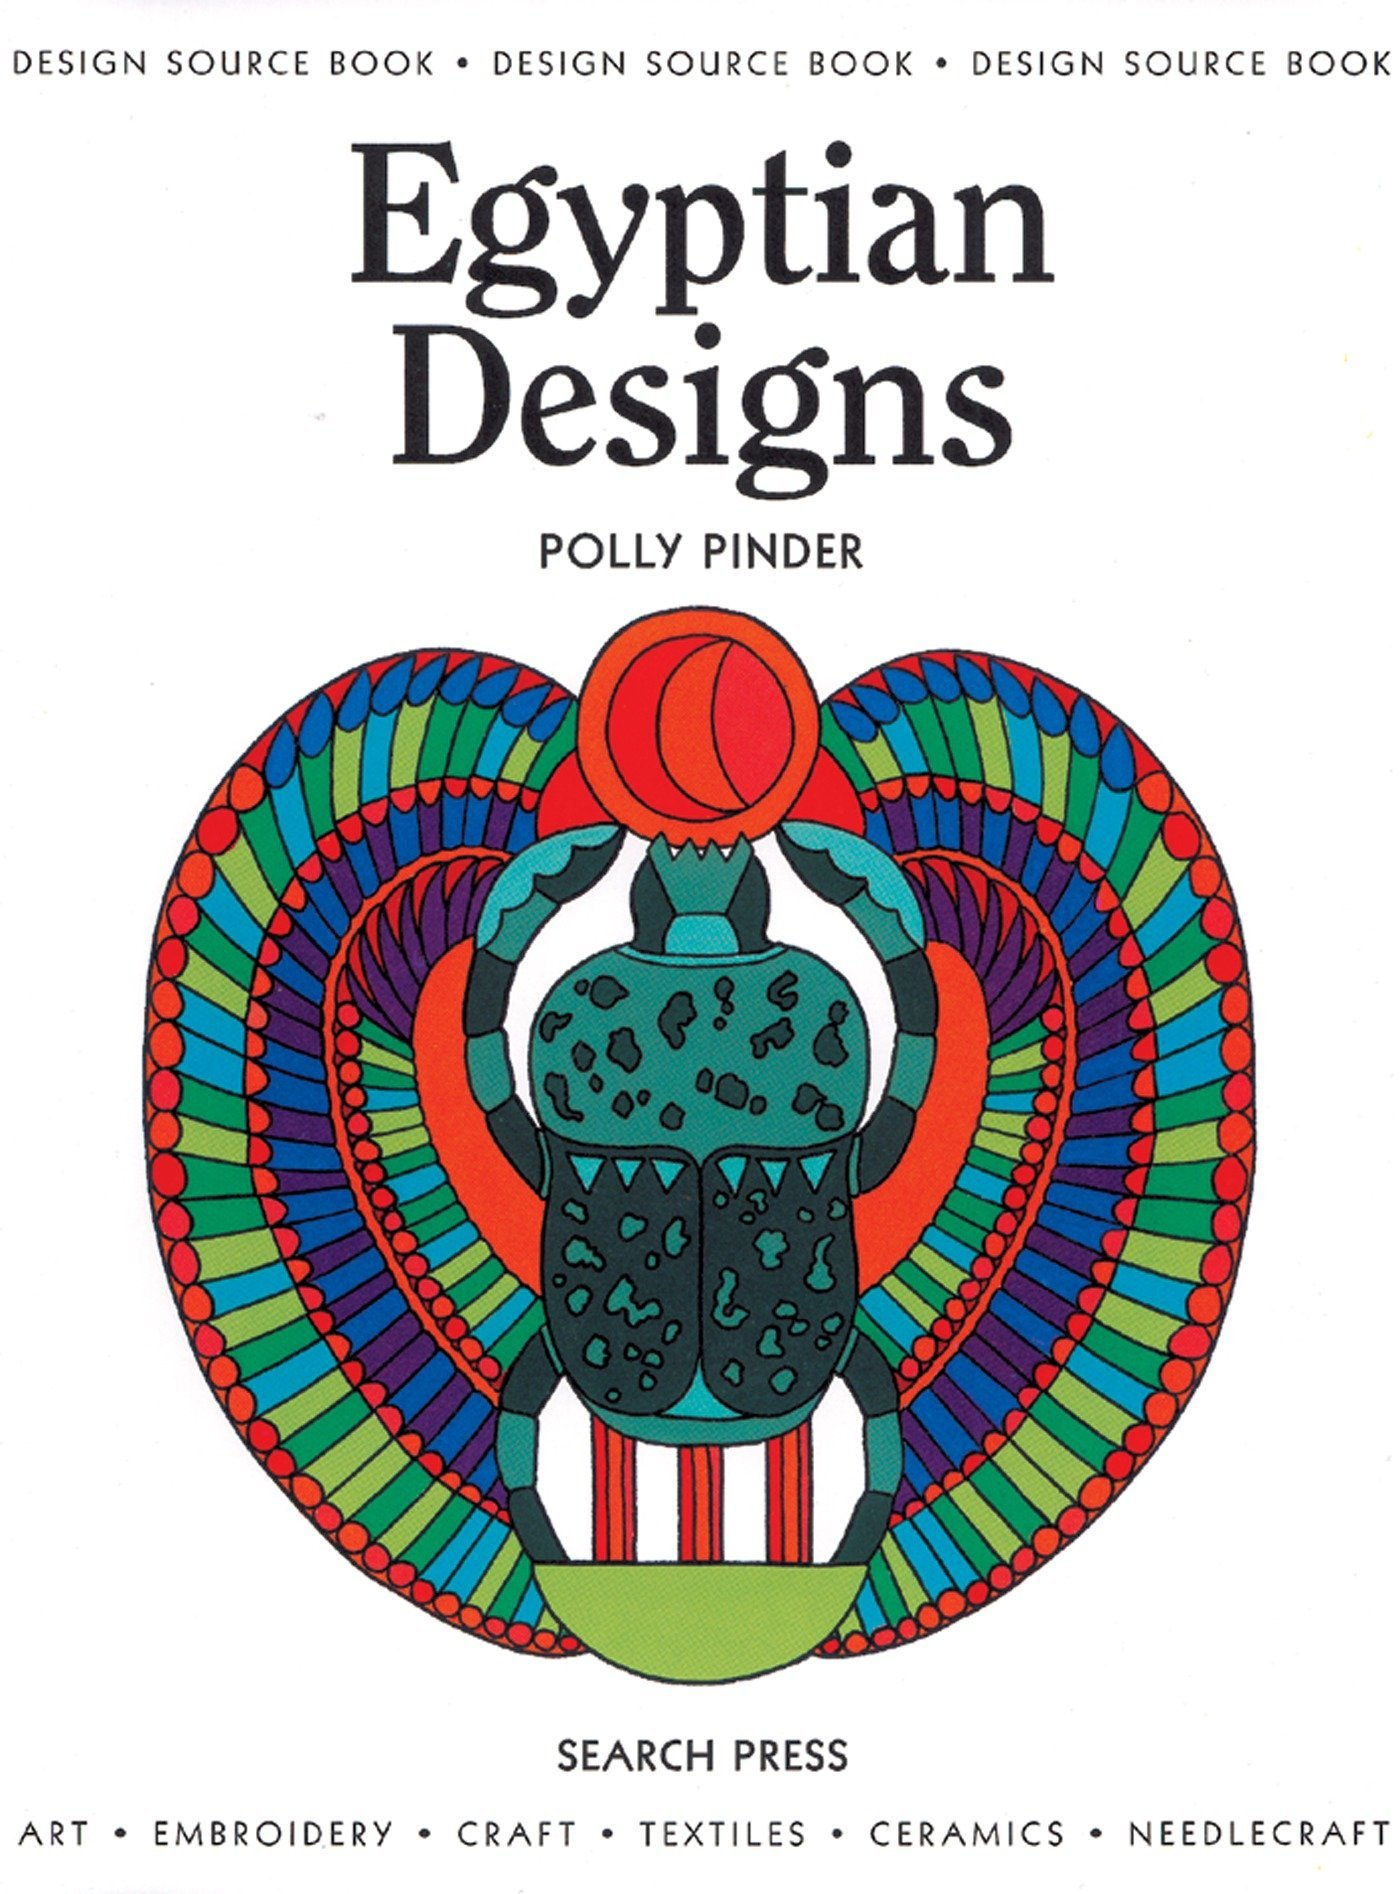 Read Online Egyptian Designs (Design Source Books) (Bk. 09) ebook